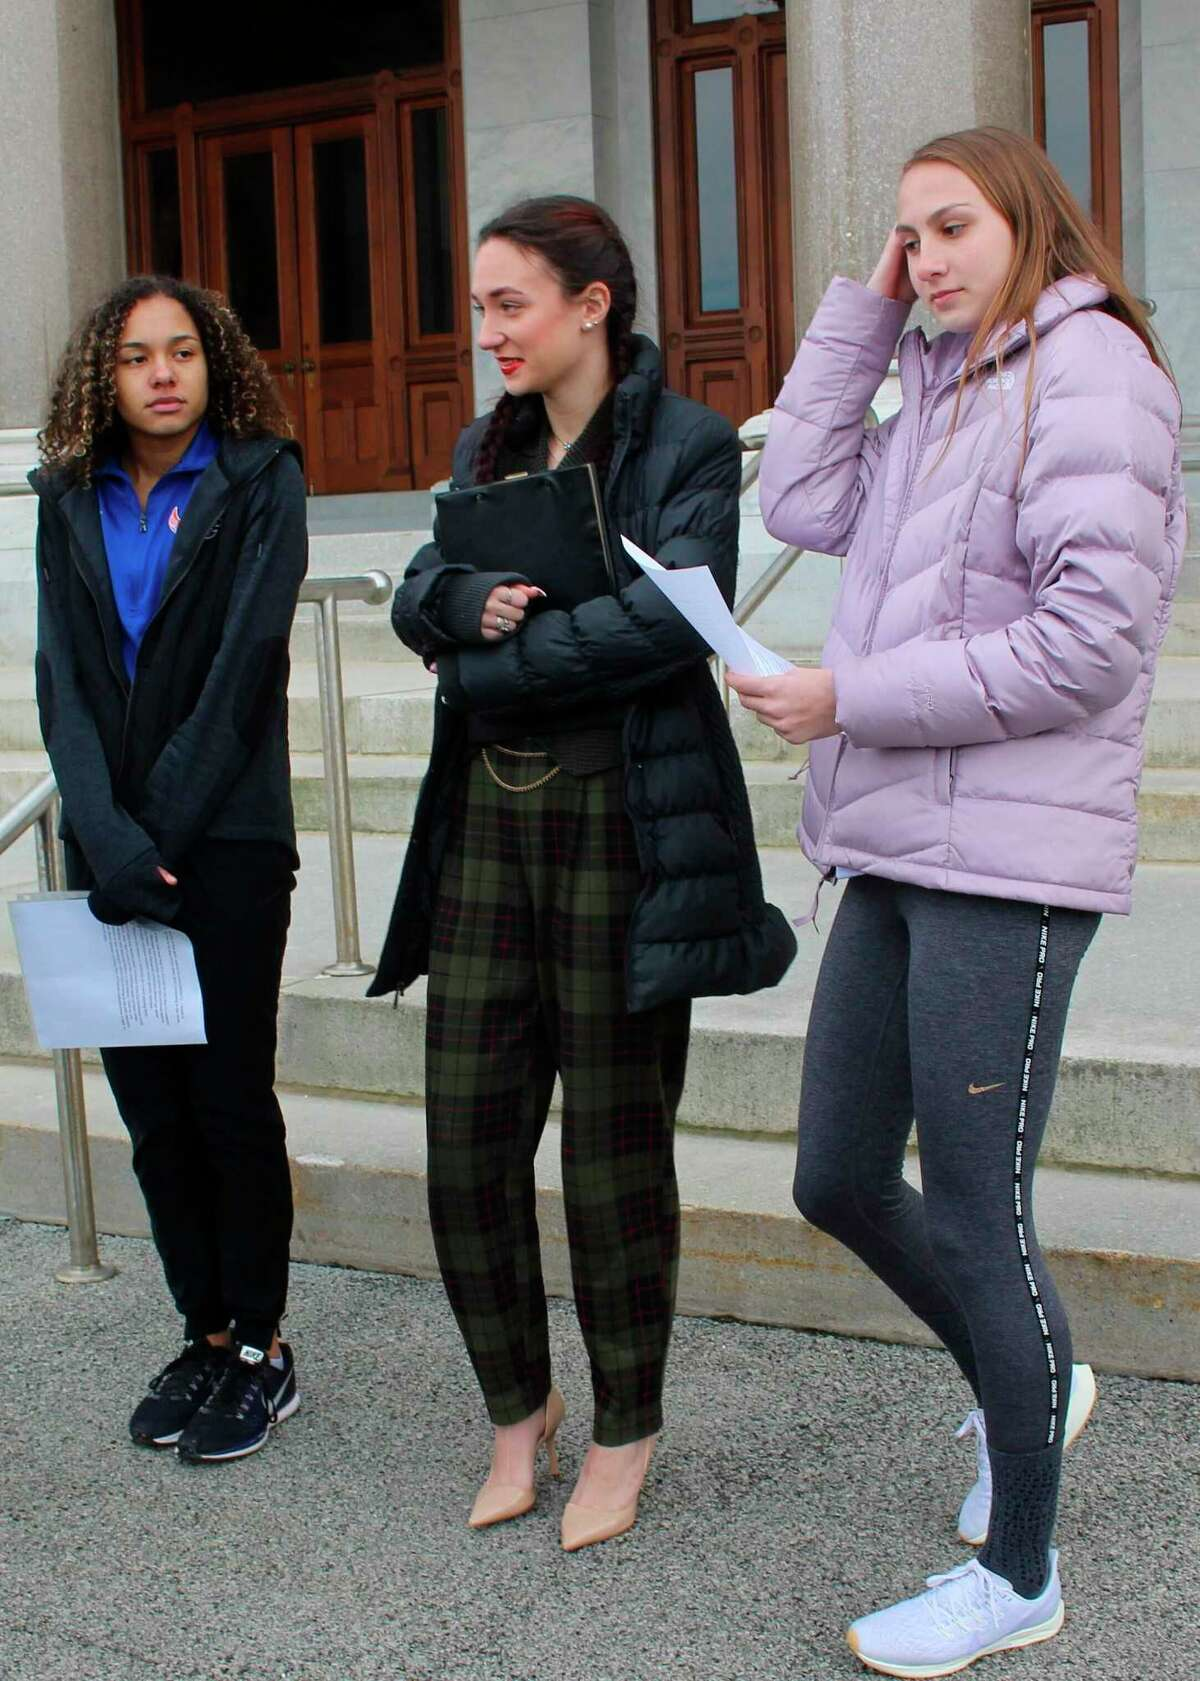 From left, high school track athletes Alanna Smith, Selina Soule and Chelsea Mitchell prepare to speak at a news conference outside the Connecticut State Capitol on Feb. 12. The girls filed a federal lawsuit to block a state policy that allows transgender athletes to compete in girls sports.